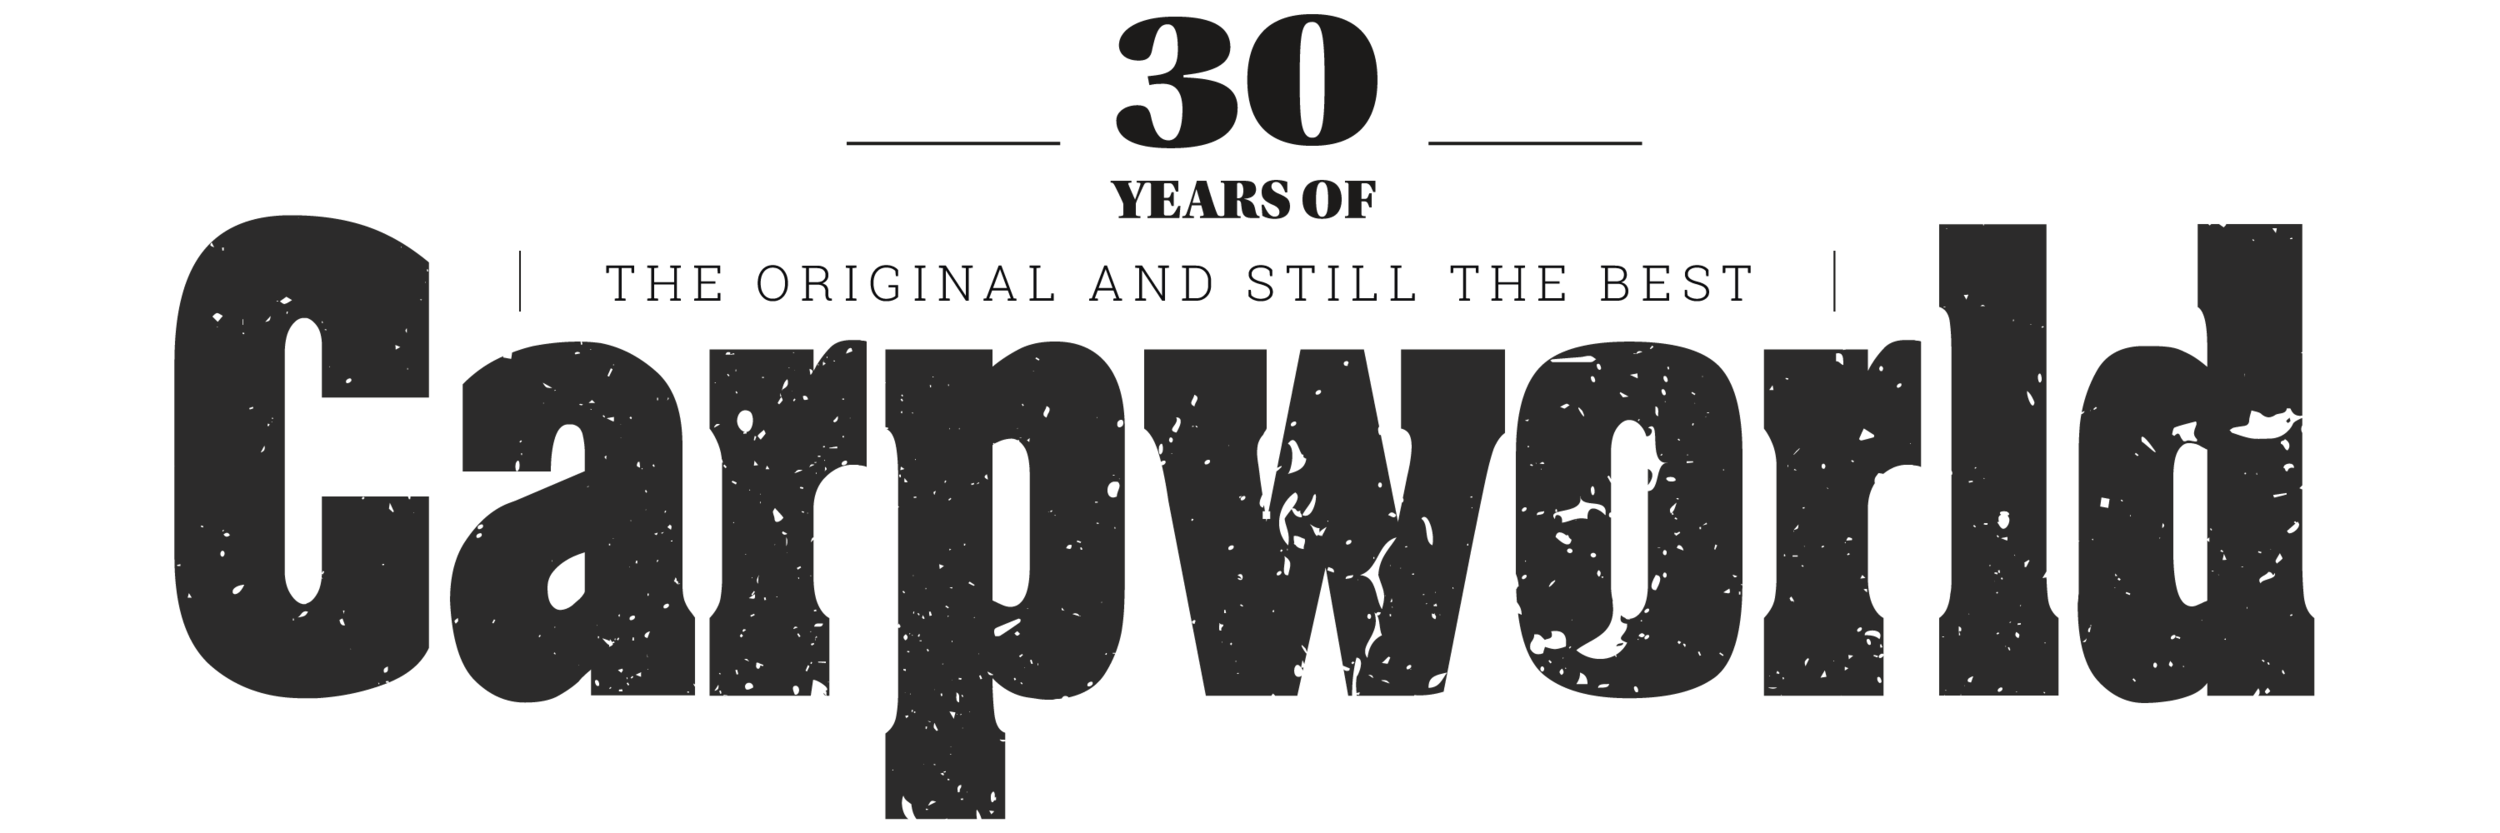 30-Years-Logo.png